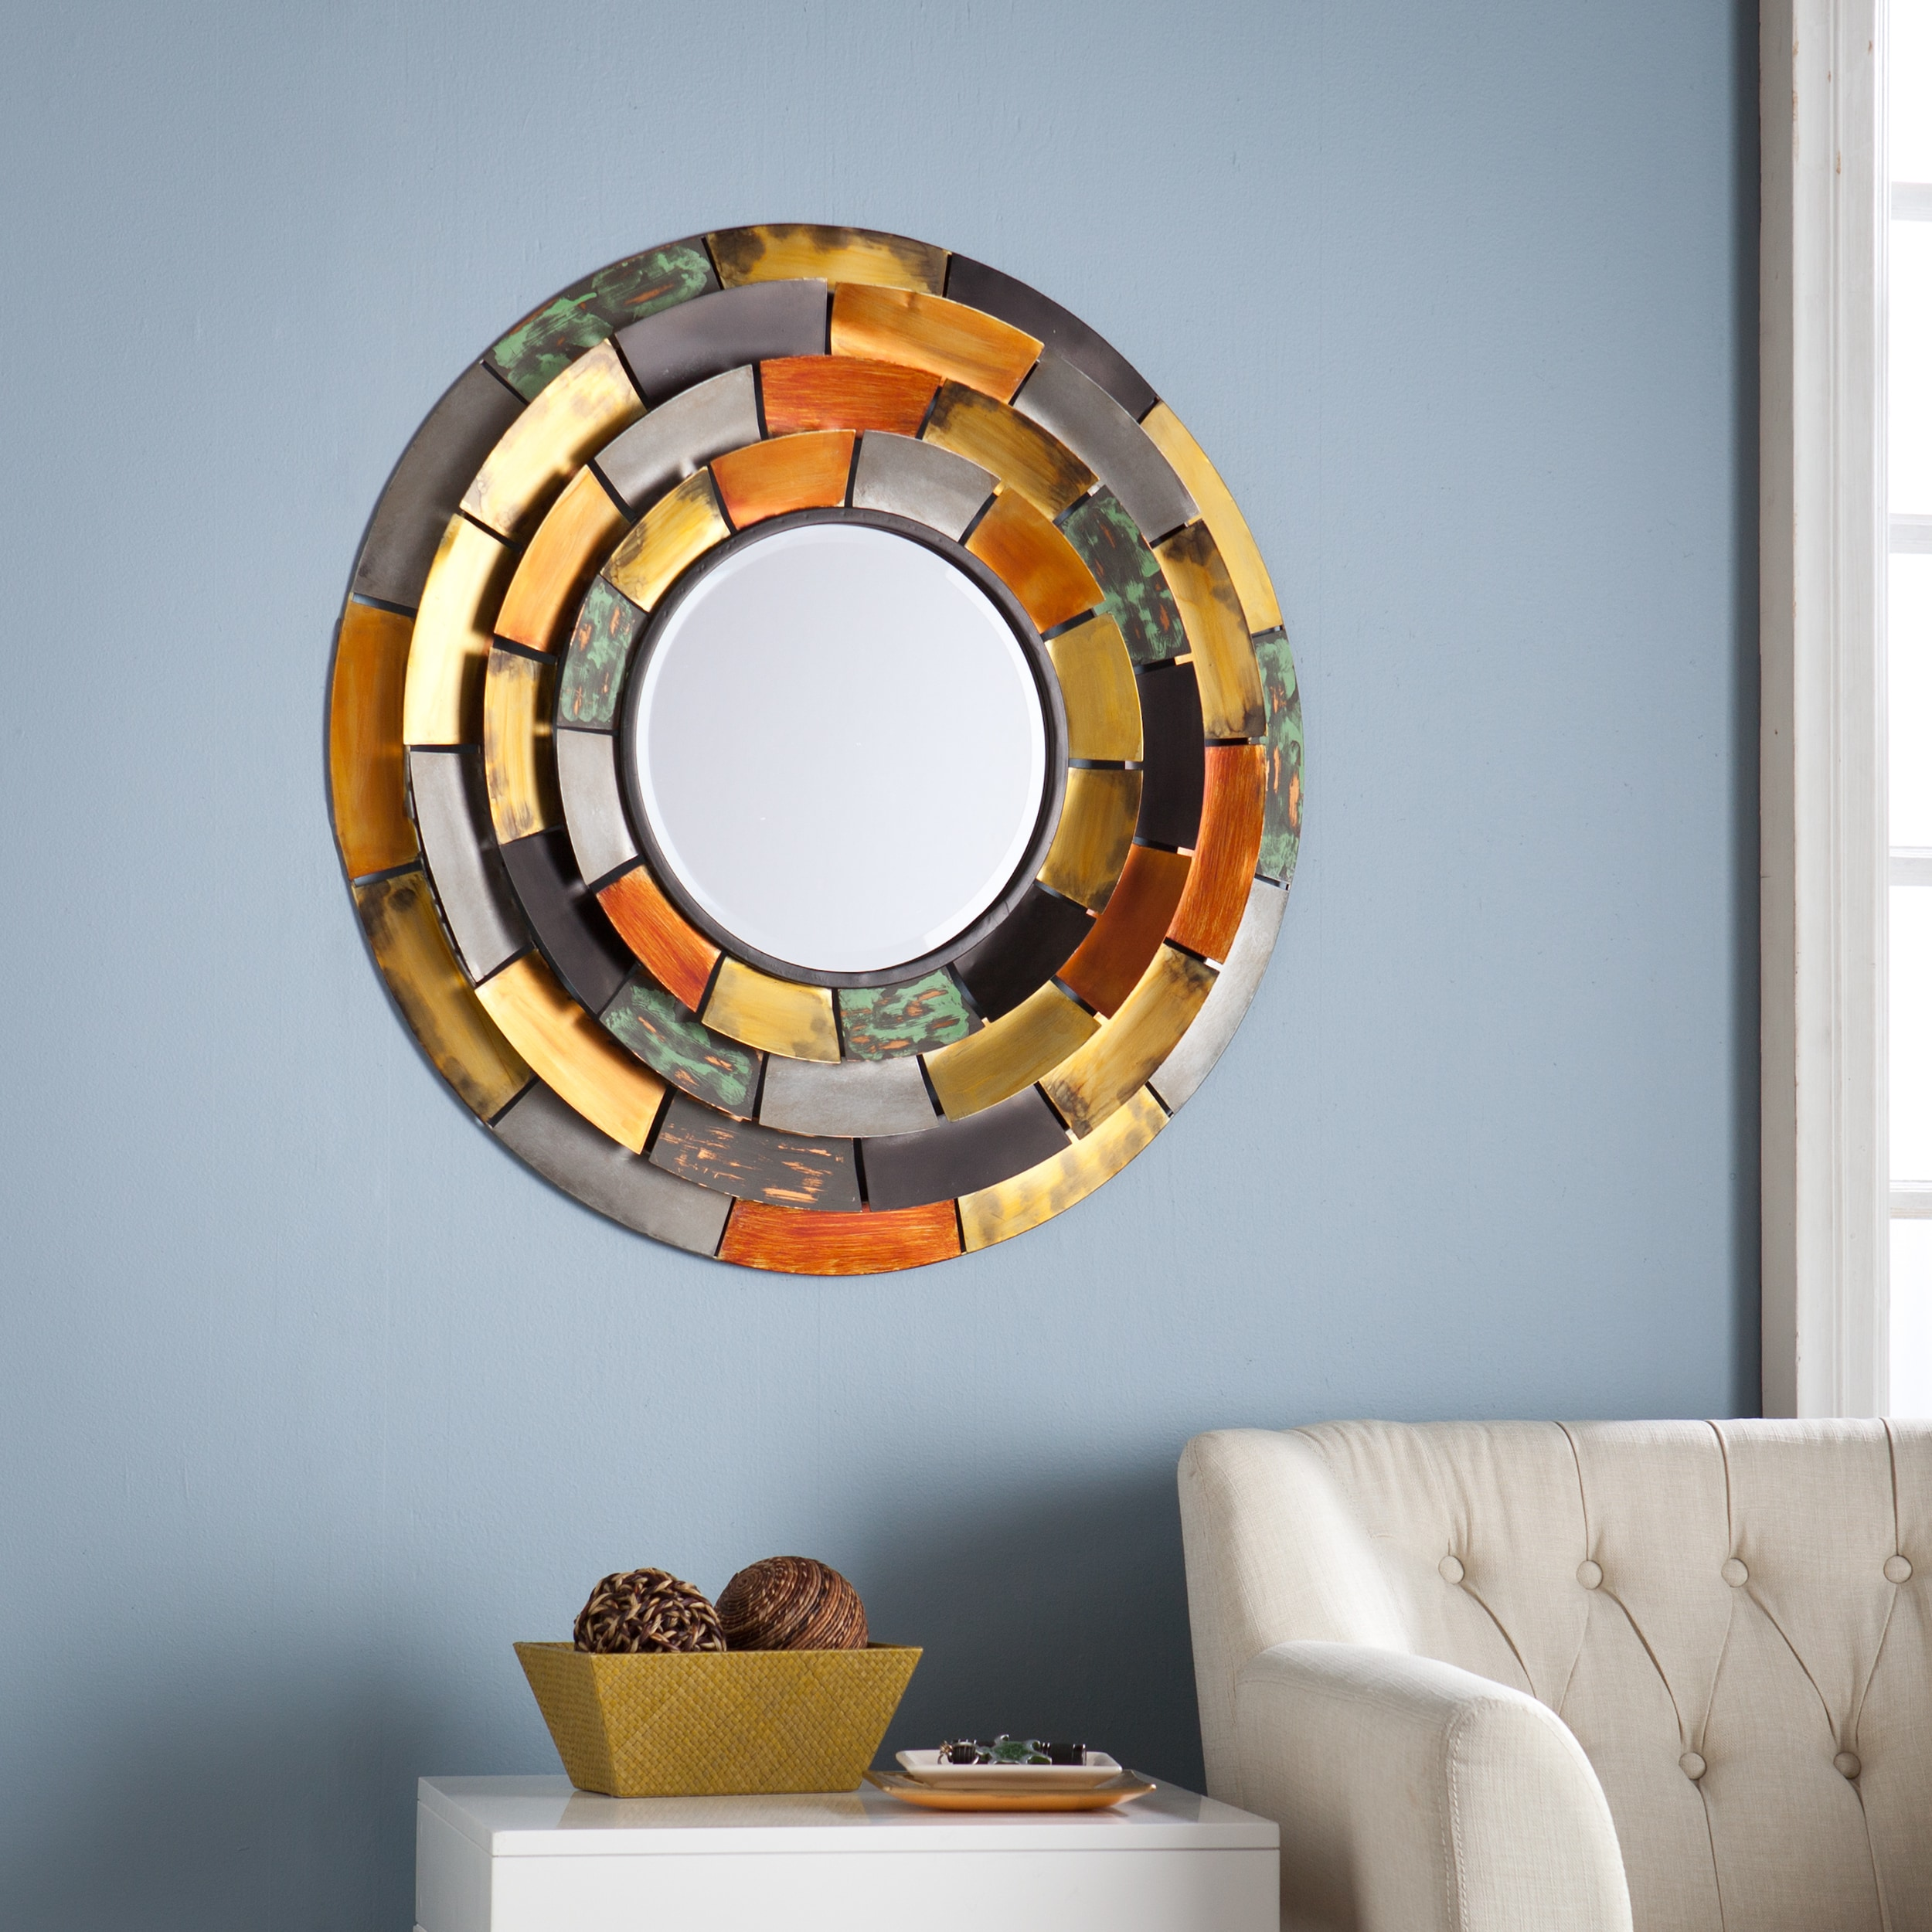 Harper Blvd Baxter Decorative Round Mirror with Multicolored Tiered Edges